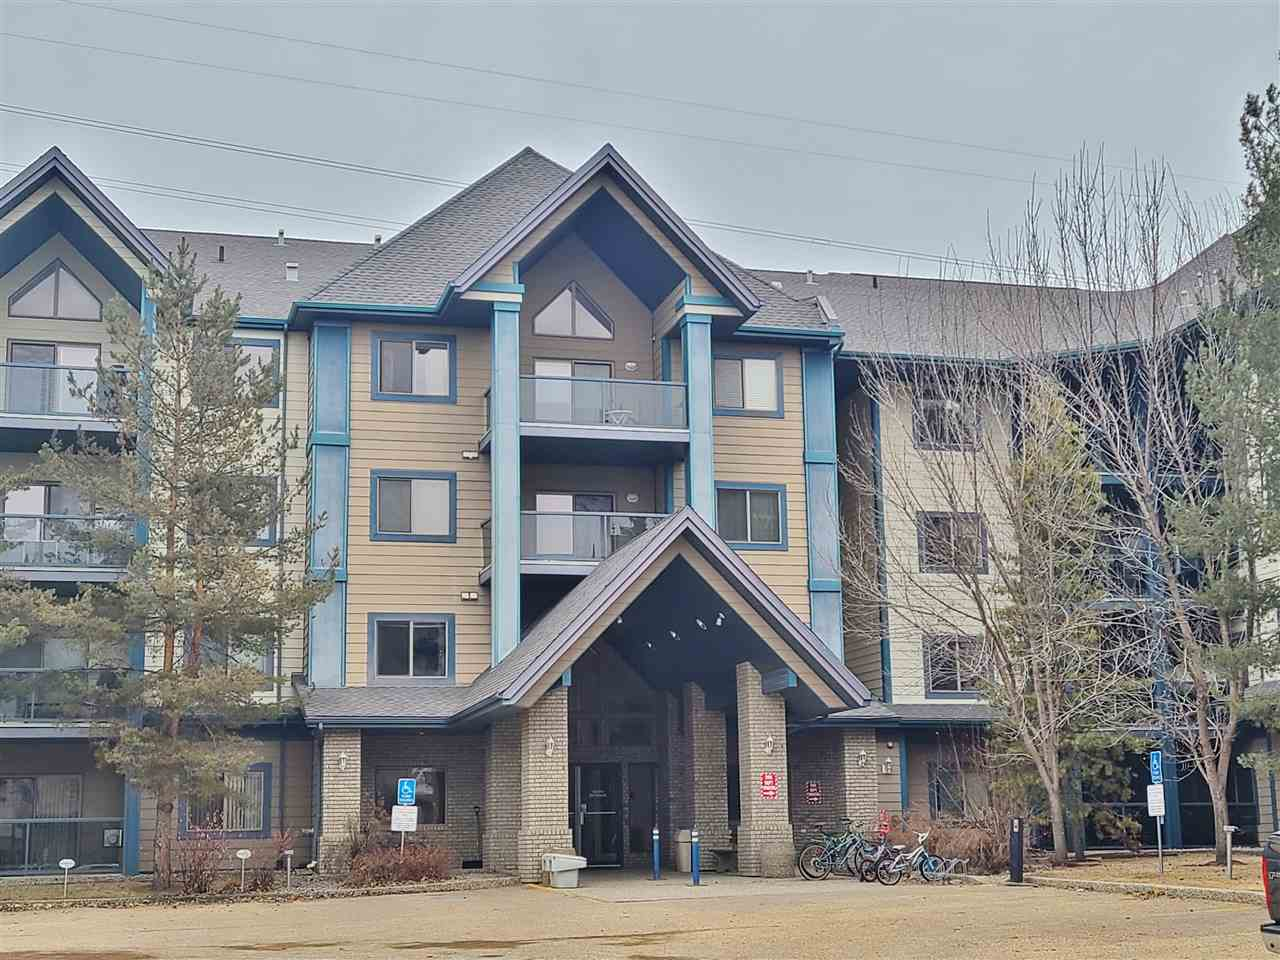 Rare 3 bedroom condo! Located close to everything ? shopping, transportation, walking trails, schools, the Terwillegar Recreation Centre and also with easy access to the Henday plus Whitemud.  The unit is move in ready. With hardwood flooring and tile throughout the bright open space, plus a gas fireplace, two bathrooms, soft corners, underground parking and a patio overlooking the running trails and green space. The building also offers an exercise room, a social room and a guest suite. Take advantage of a condo with three bedrooms whether office space is needed or kids need space.